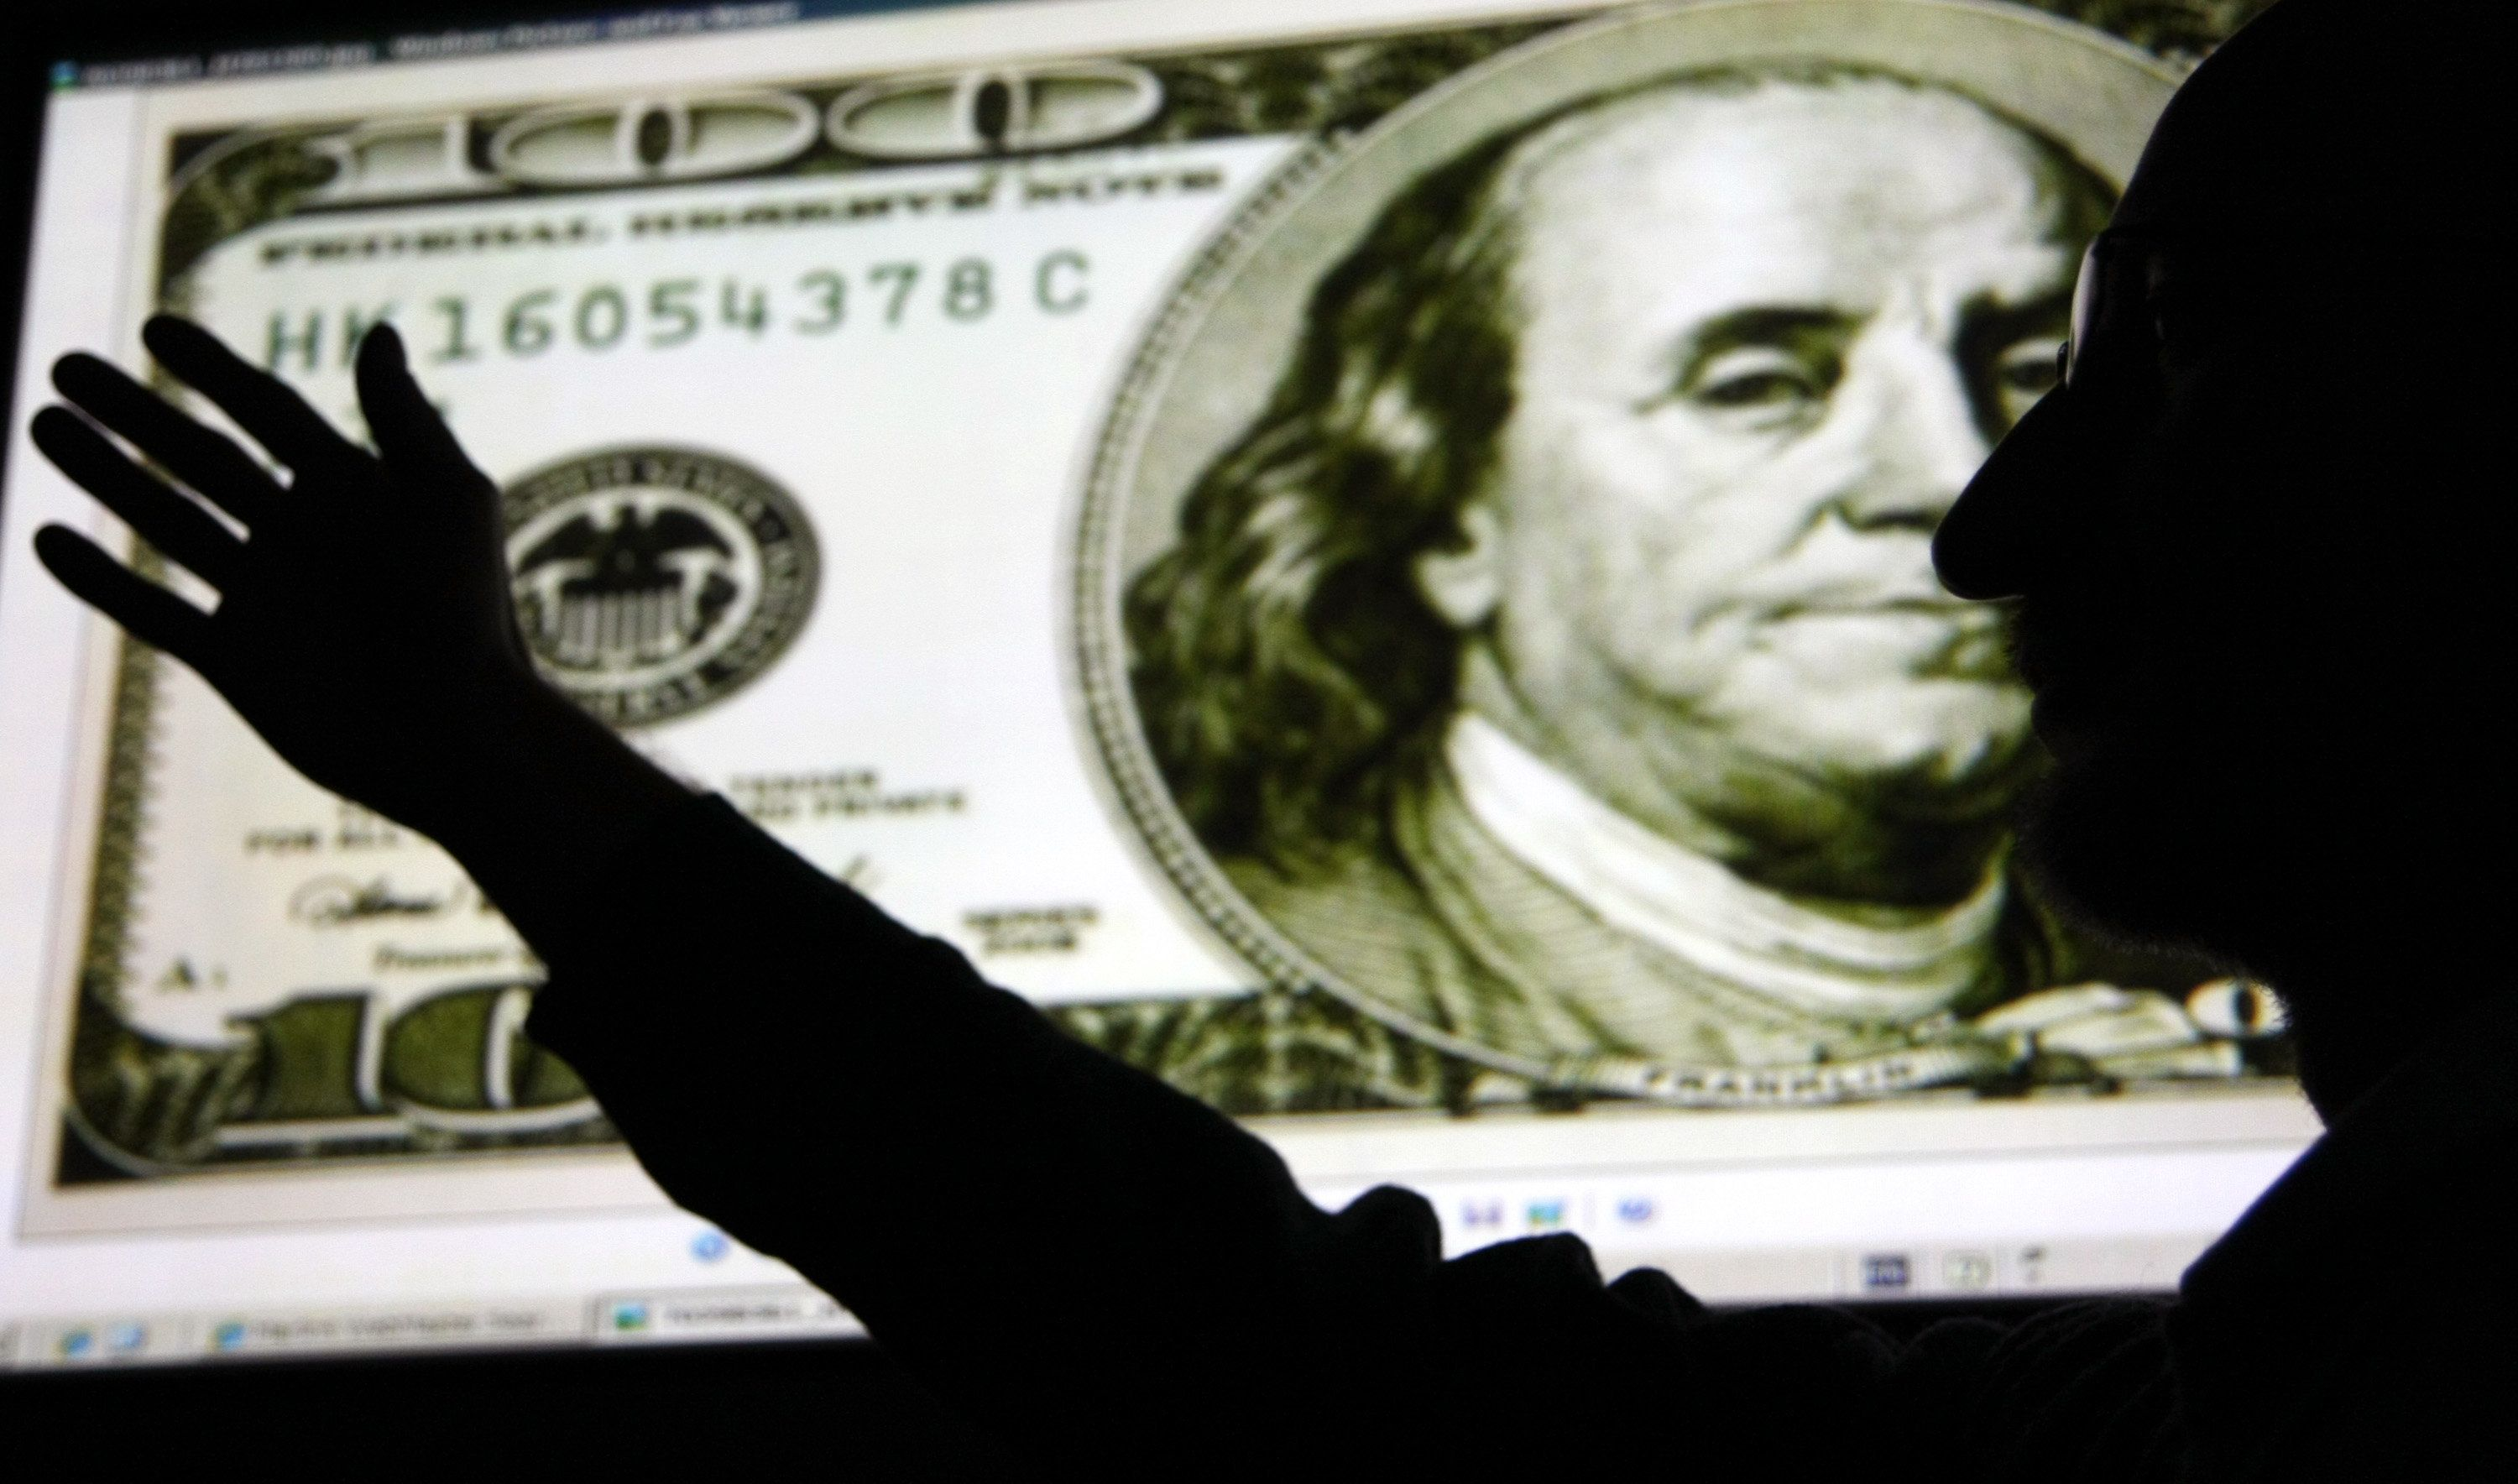 A man, silhouetted in front of an image of a 100 U.S. dollar note displayed on a monitor, poses for a photograph in Tokyo, Japan, on Wednesday, Dec. 29, 2010. The dollar traded near a six-week low against the yen as U.S. data signaled an uneven recovery in the world's largest economy. Photographer: Tomohiro Ohsumi/Bloomberg via Getty Images